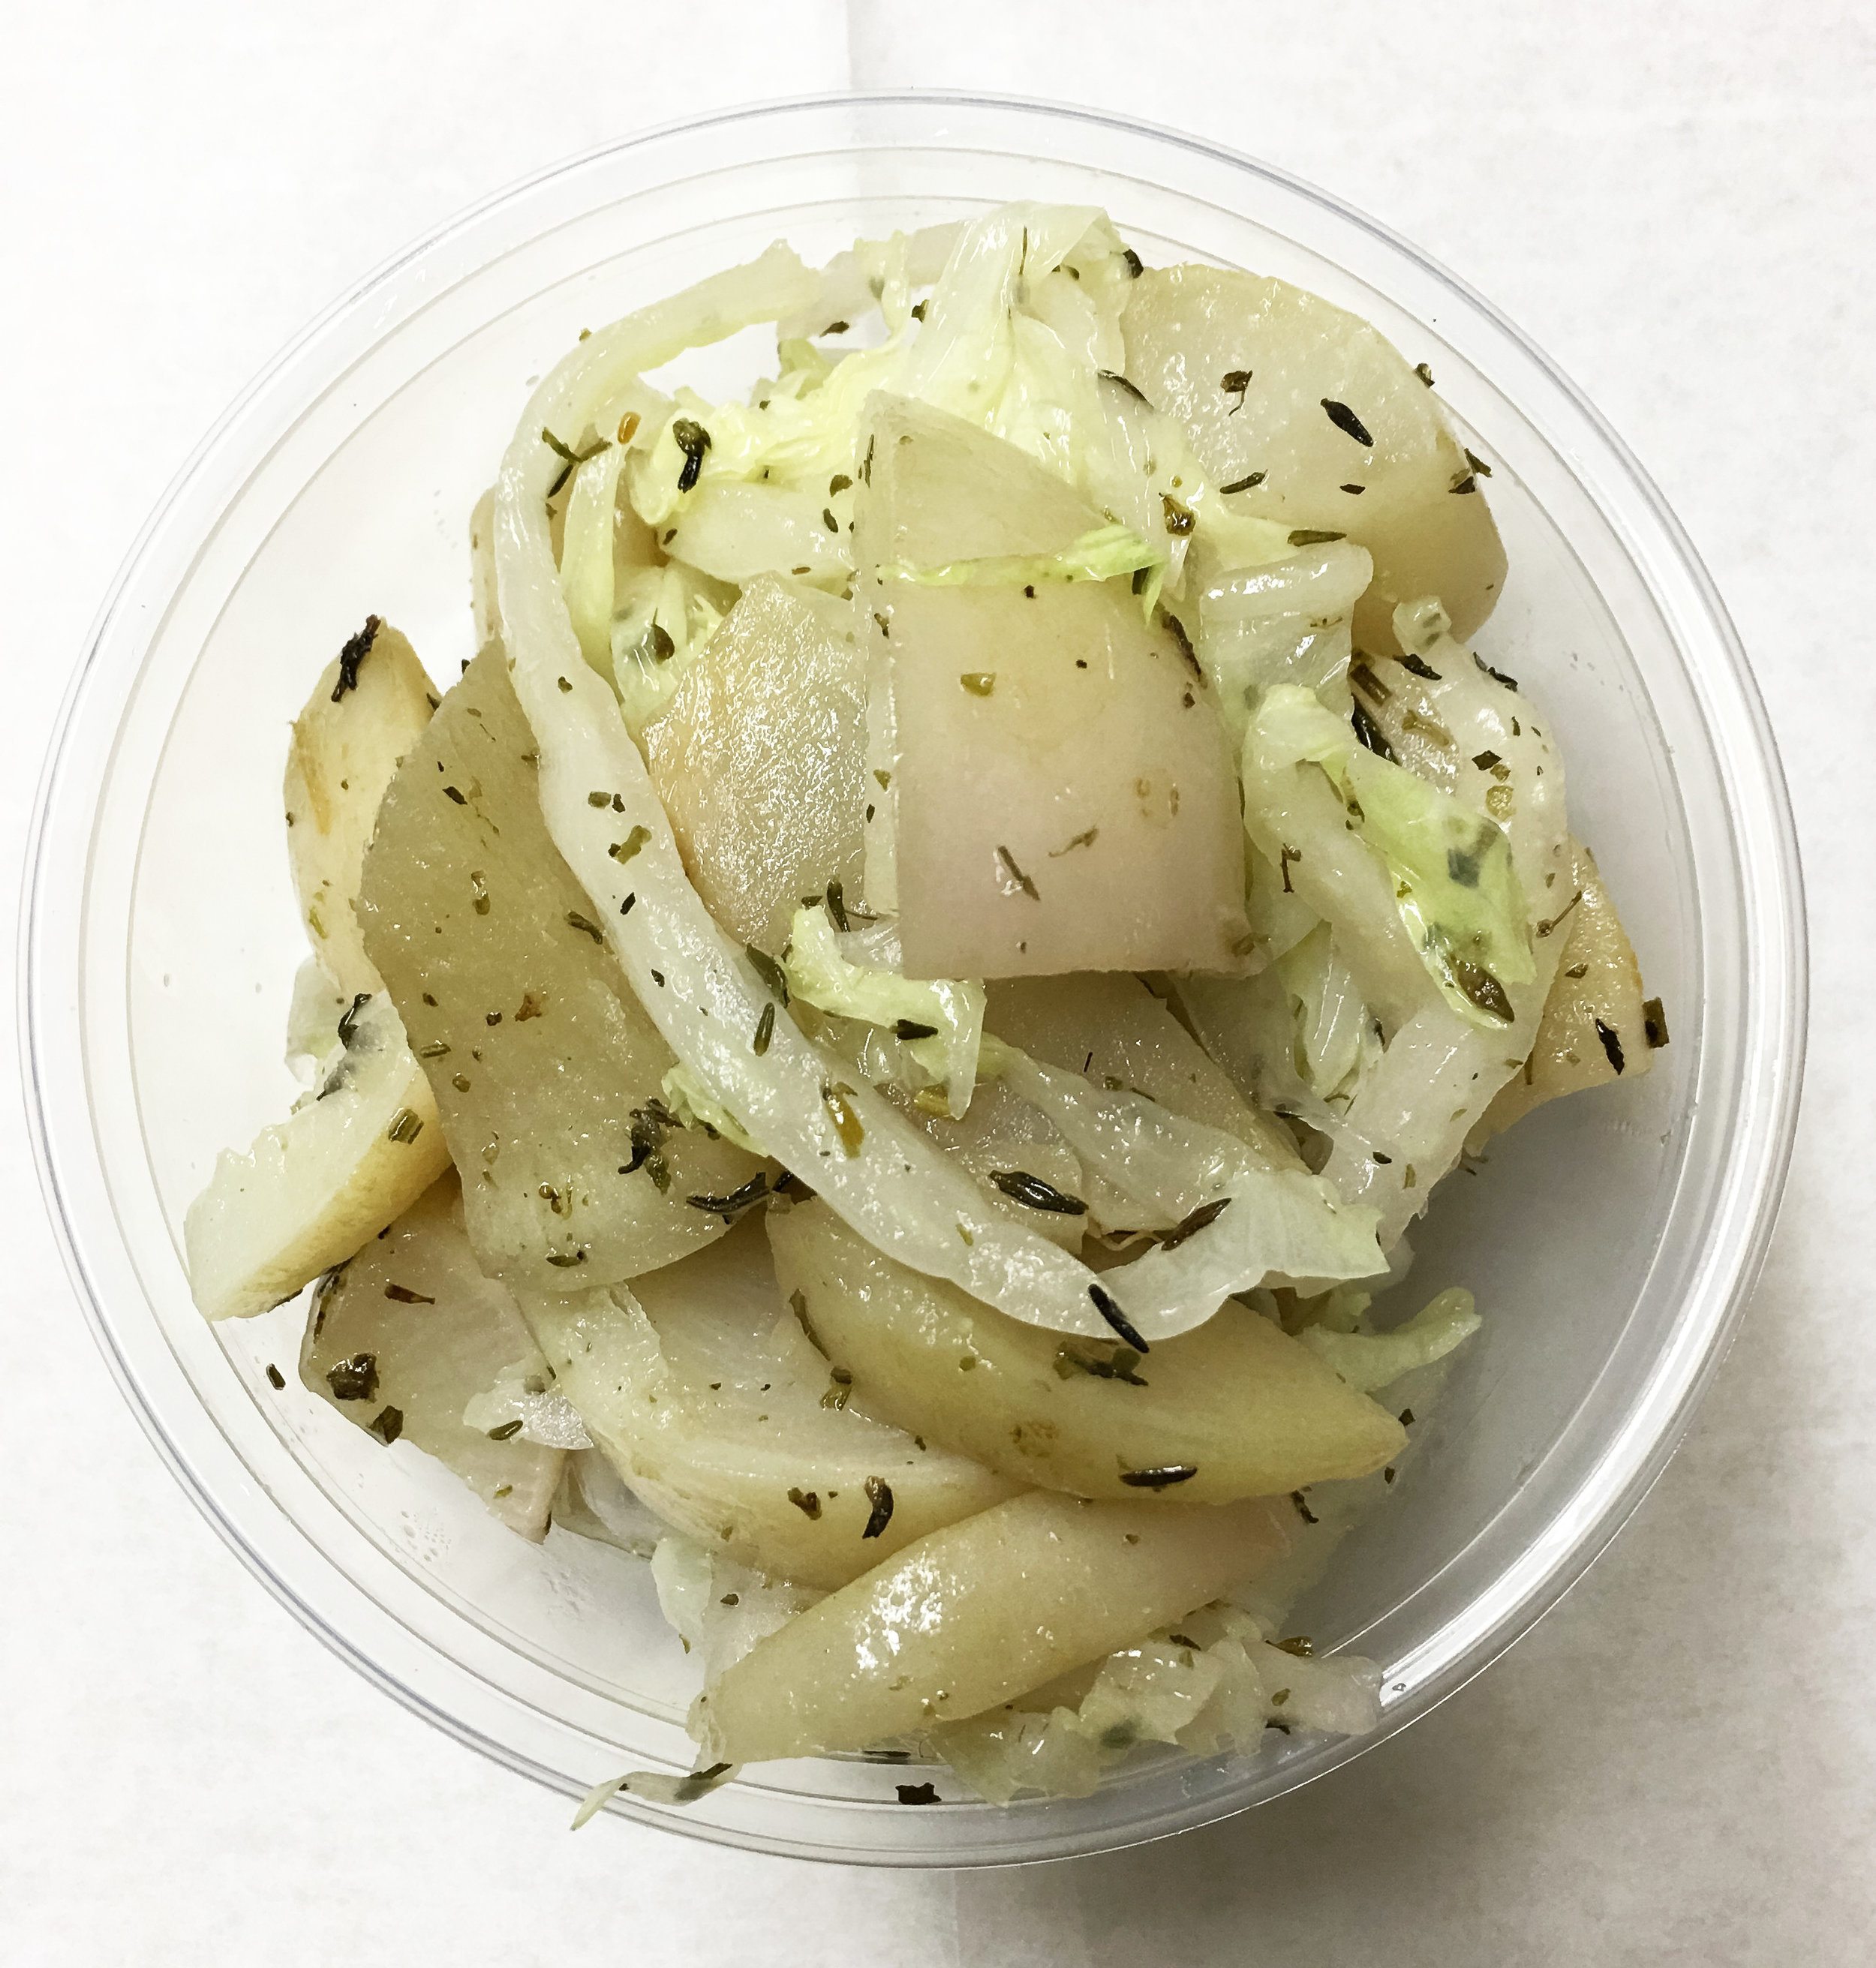 Baked turnips _ hdp_ blanched nappa